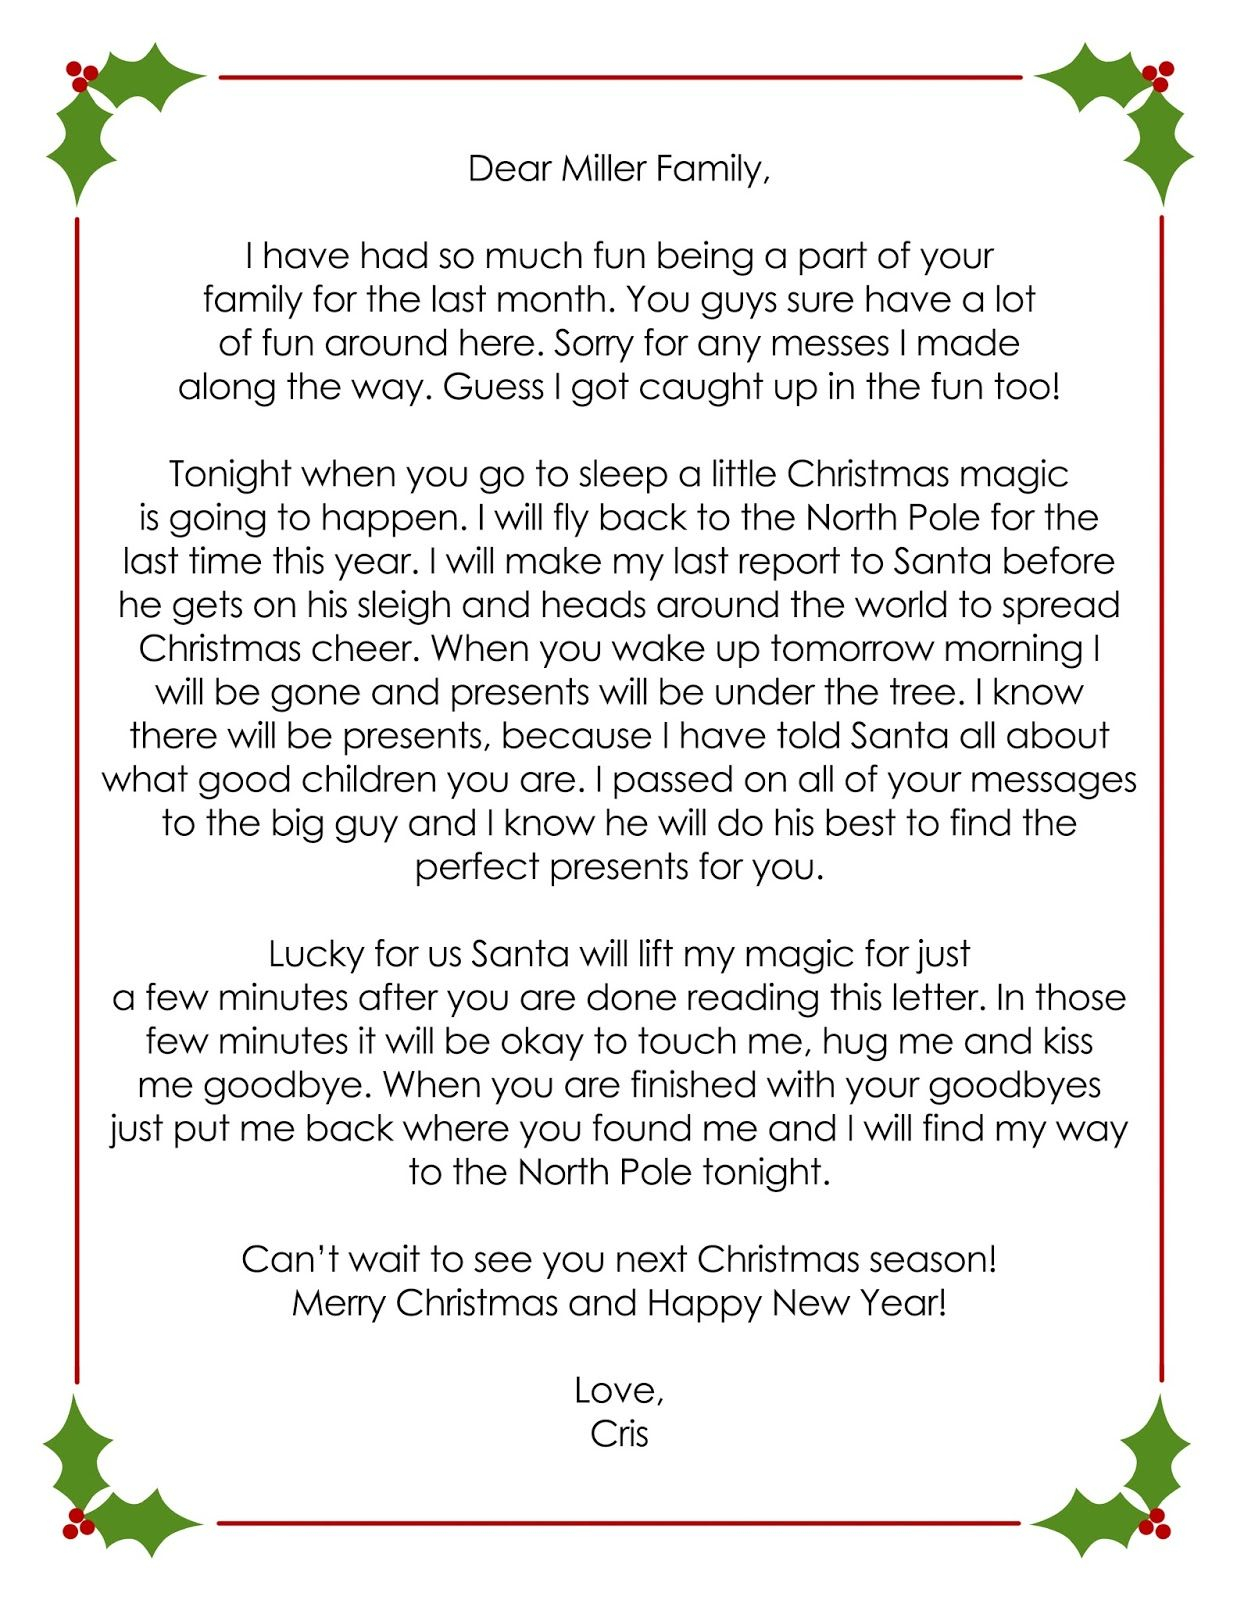 goodbye letter from elf on the shelf template example-OUR ELF ON THE SHELF 18-l